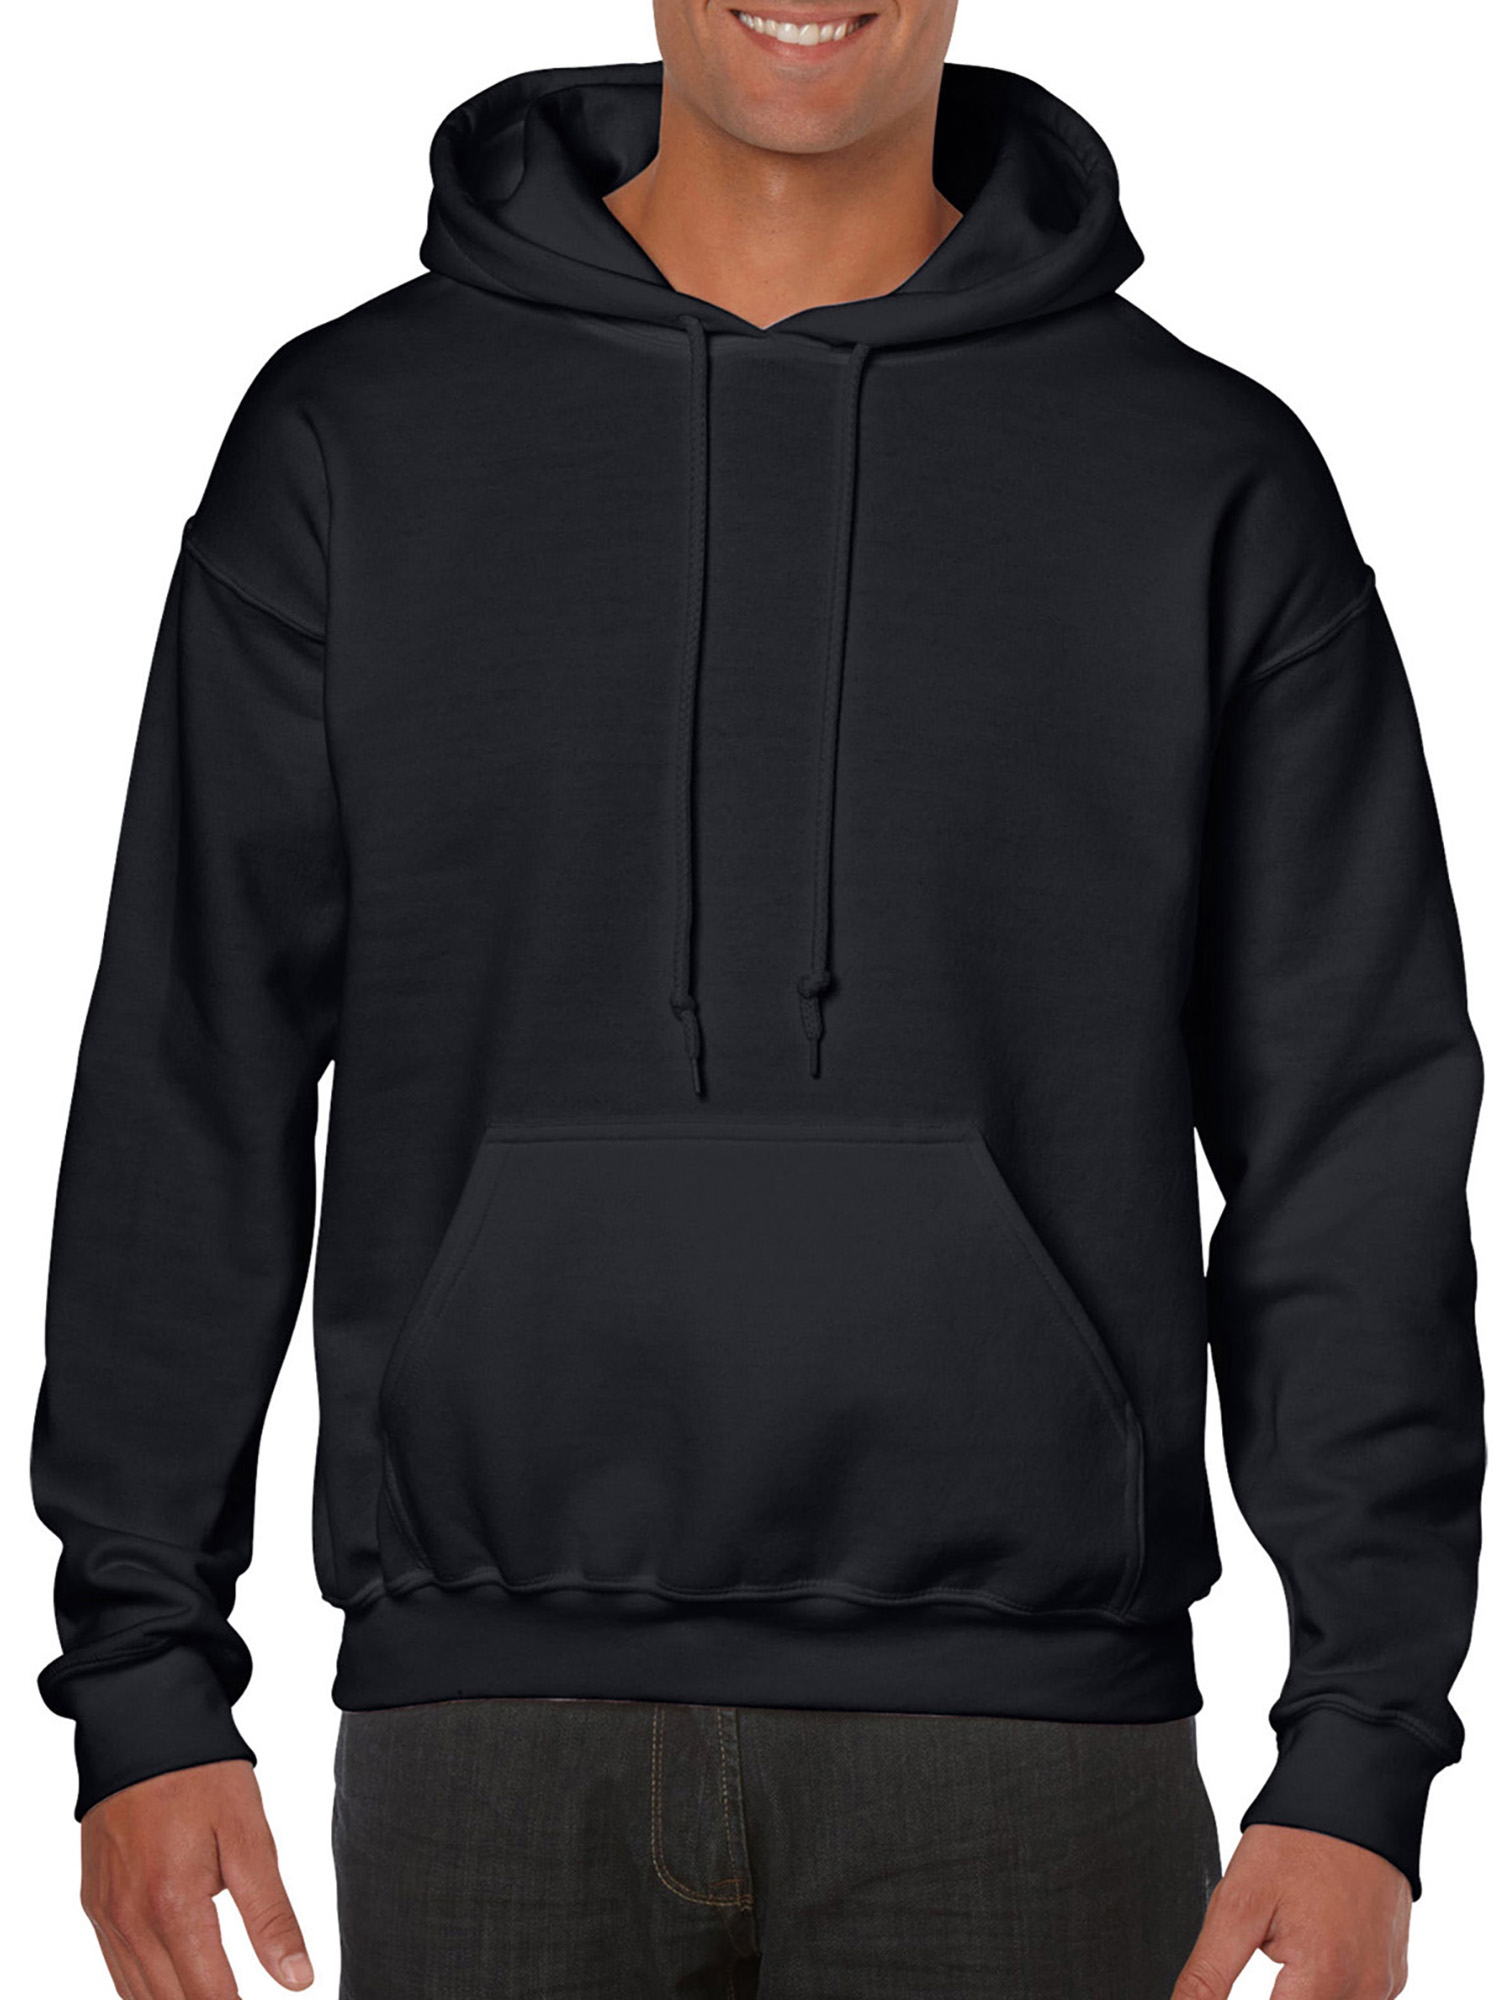 Big Mens Hooded Sweatshirt